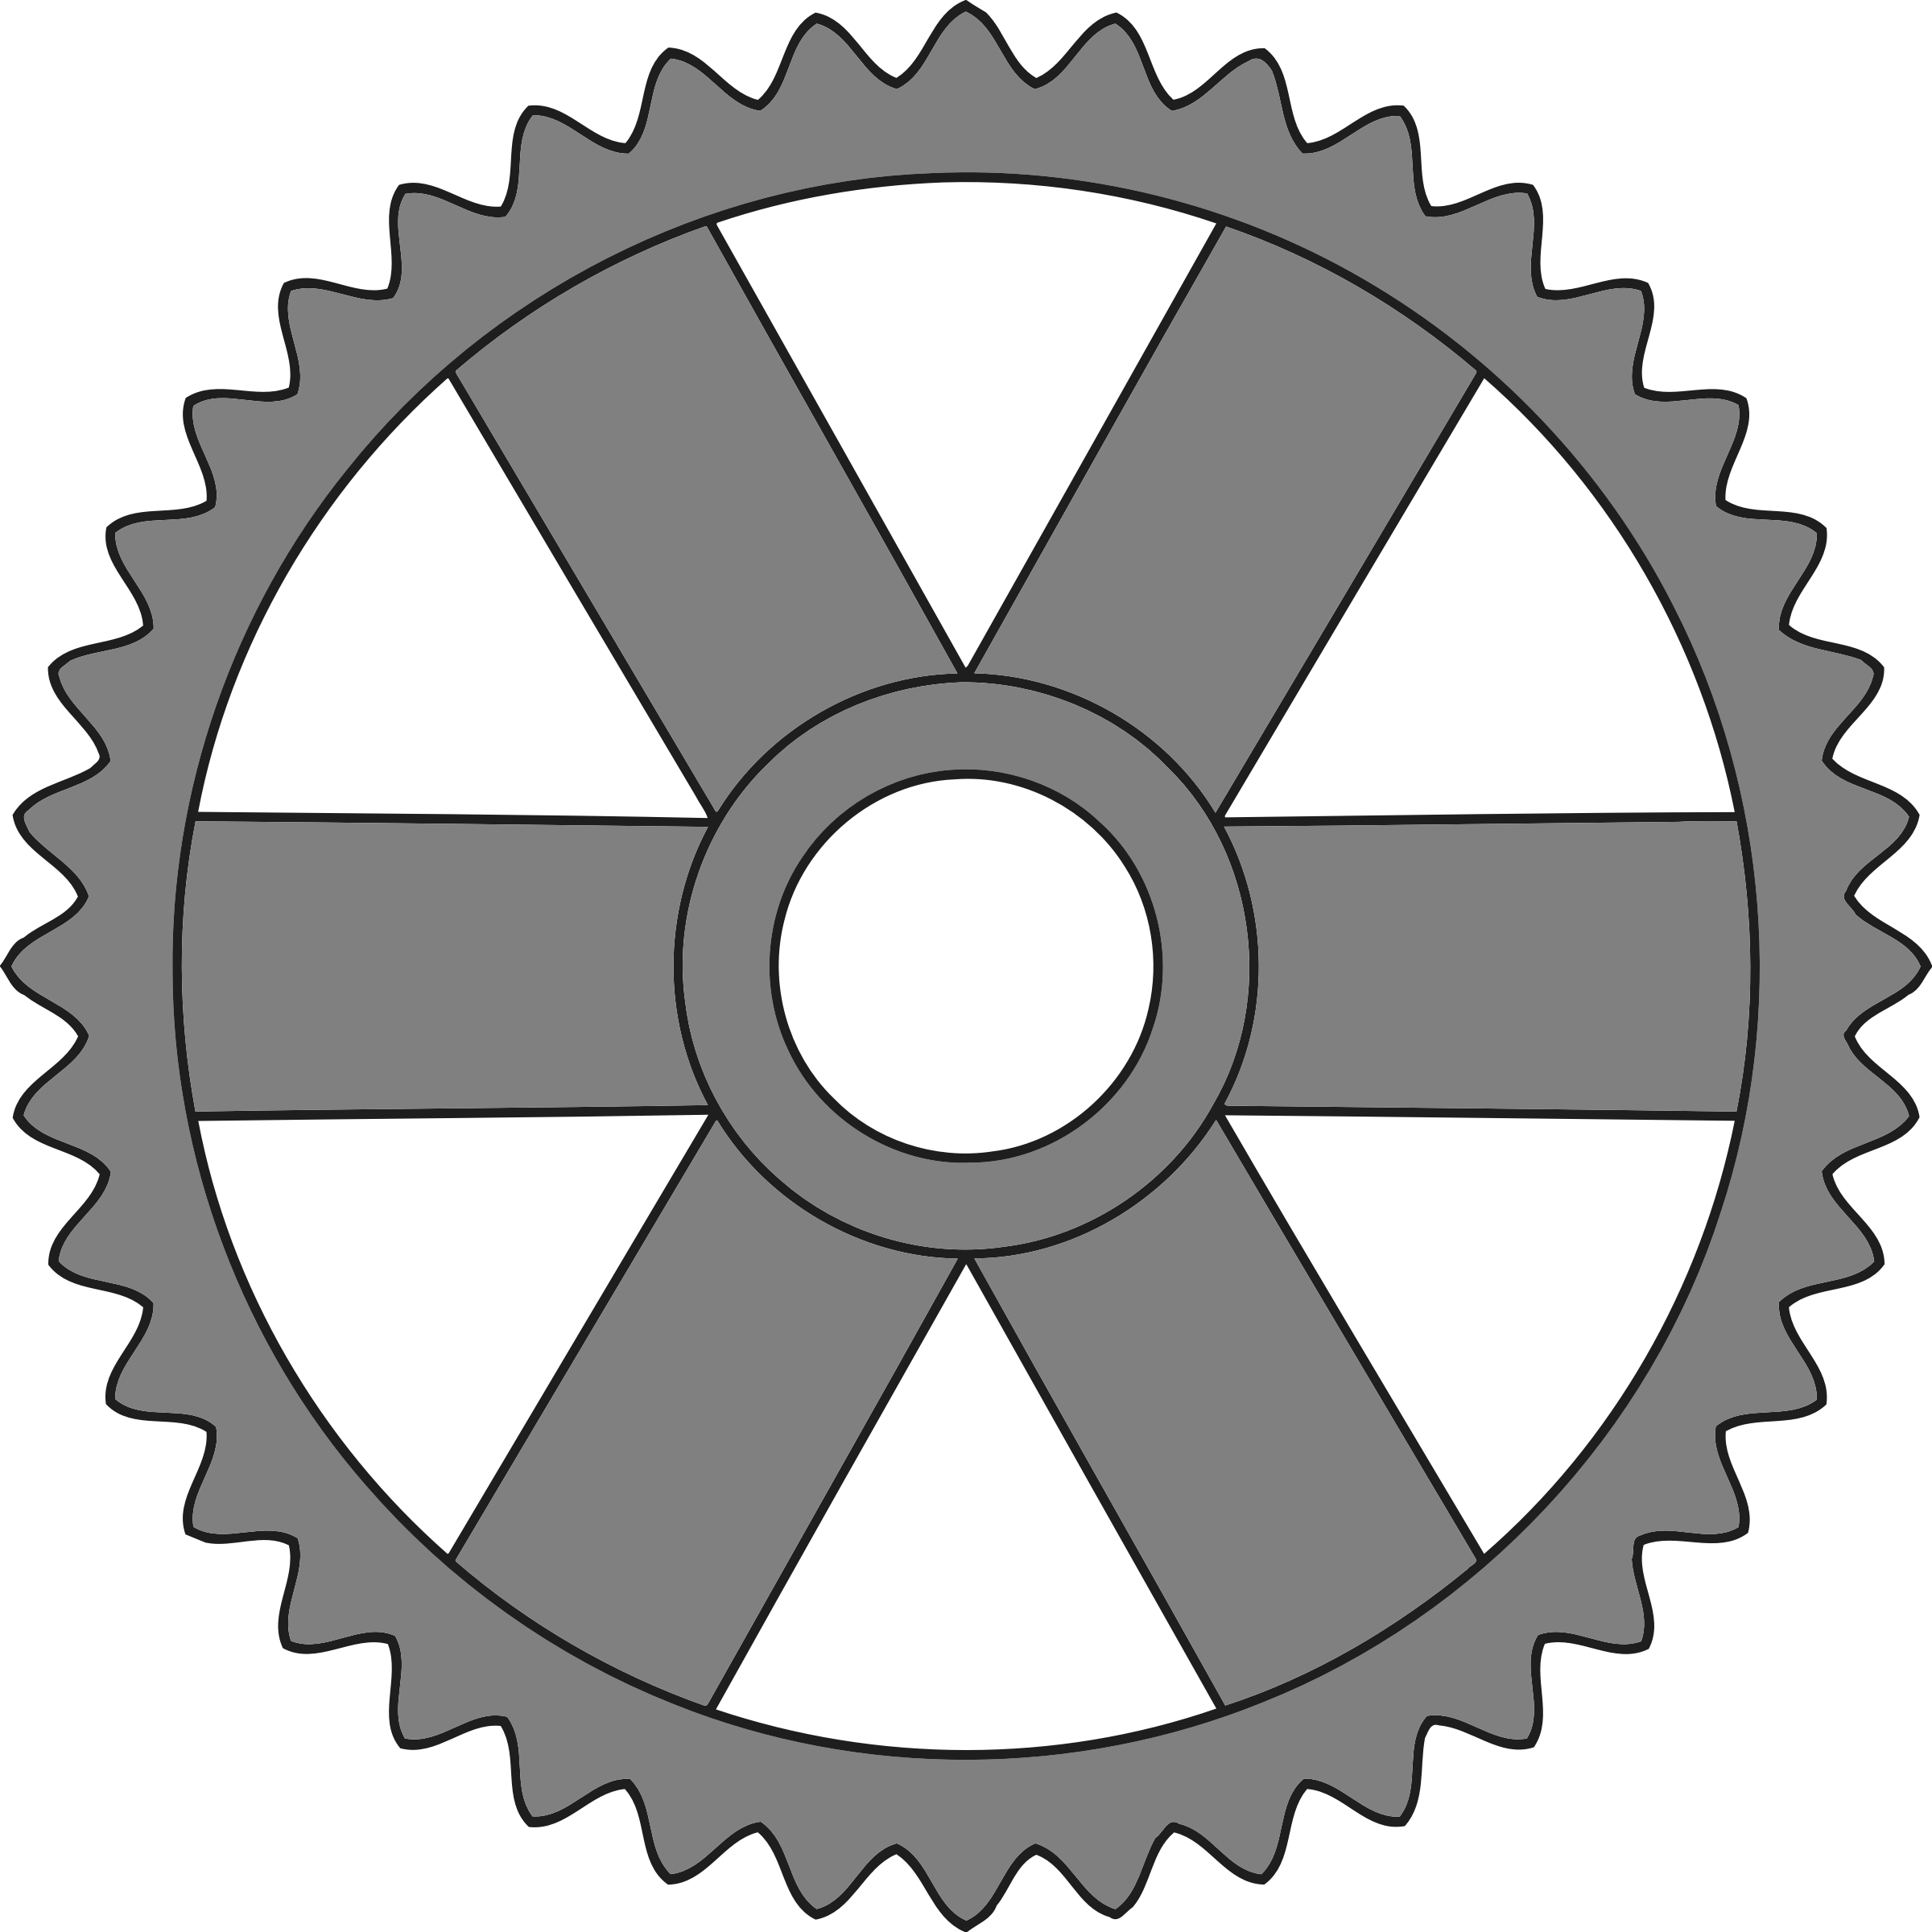 40-tooth gear with rectangular spokes by Firkin